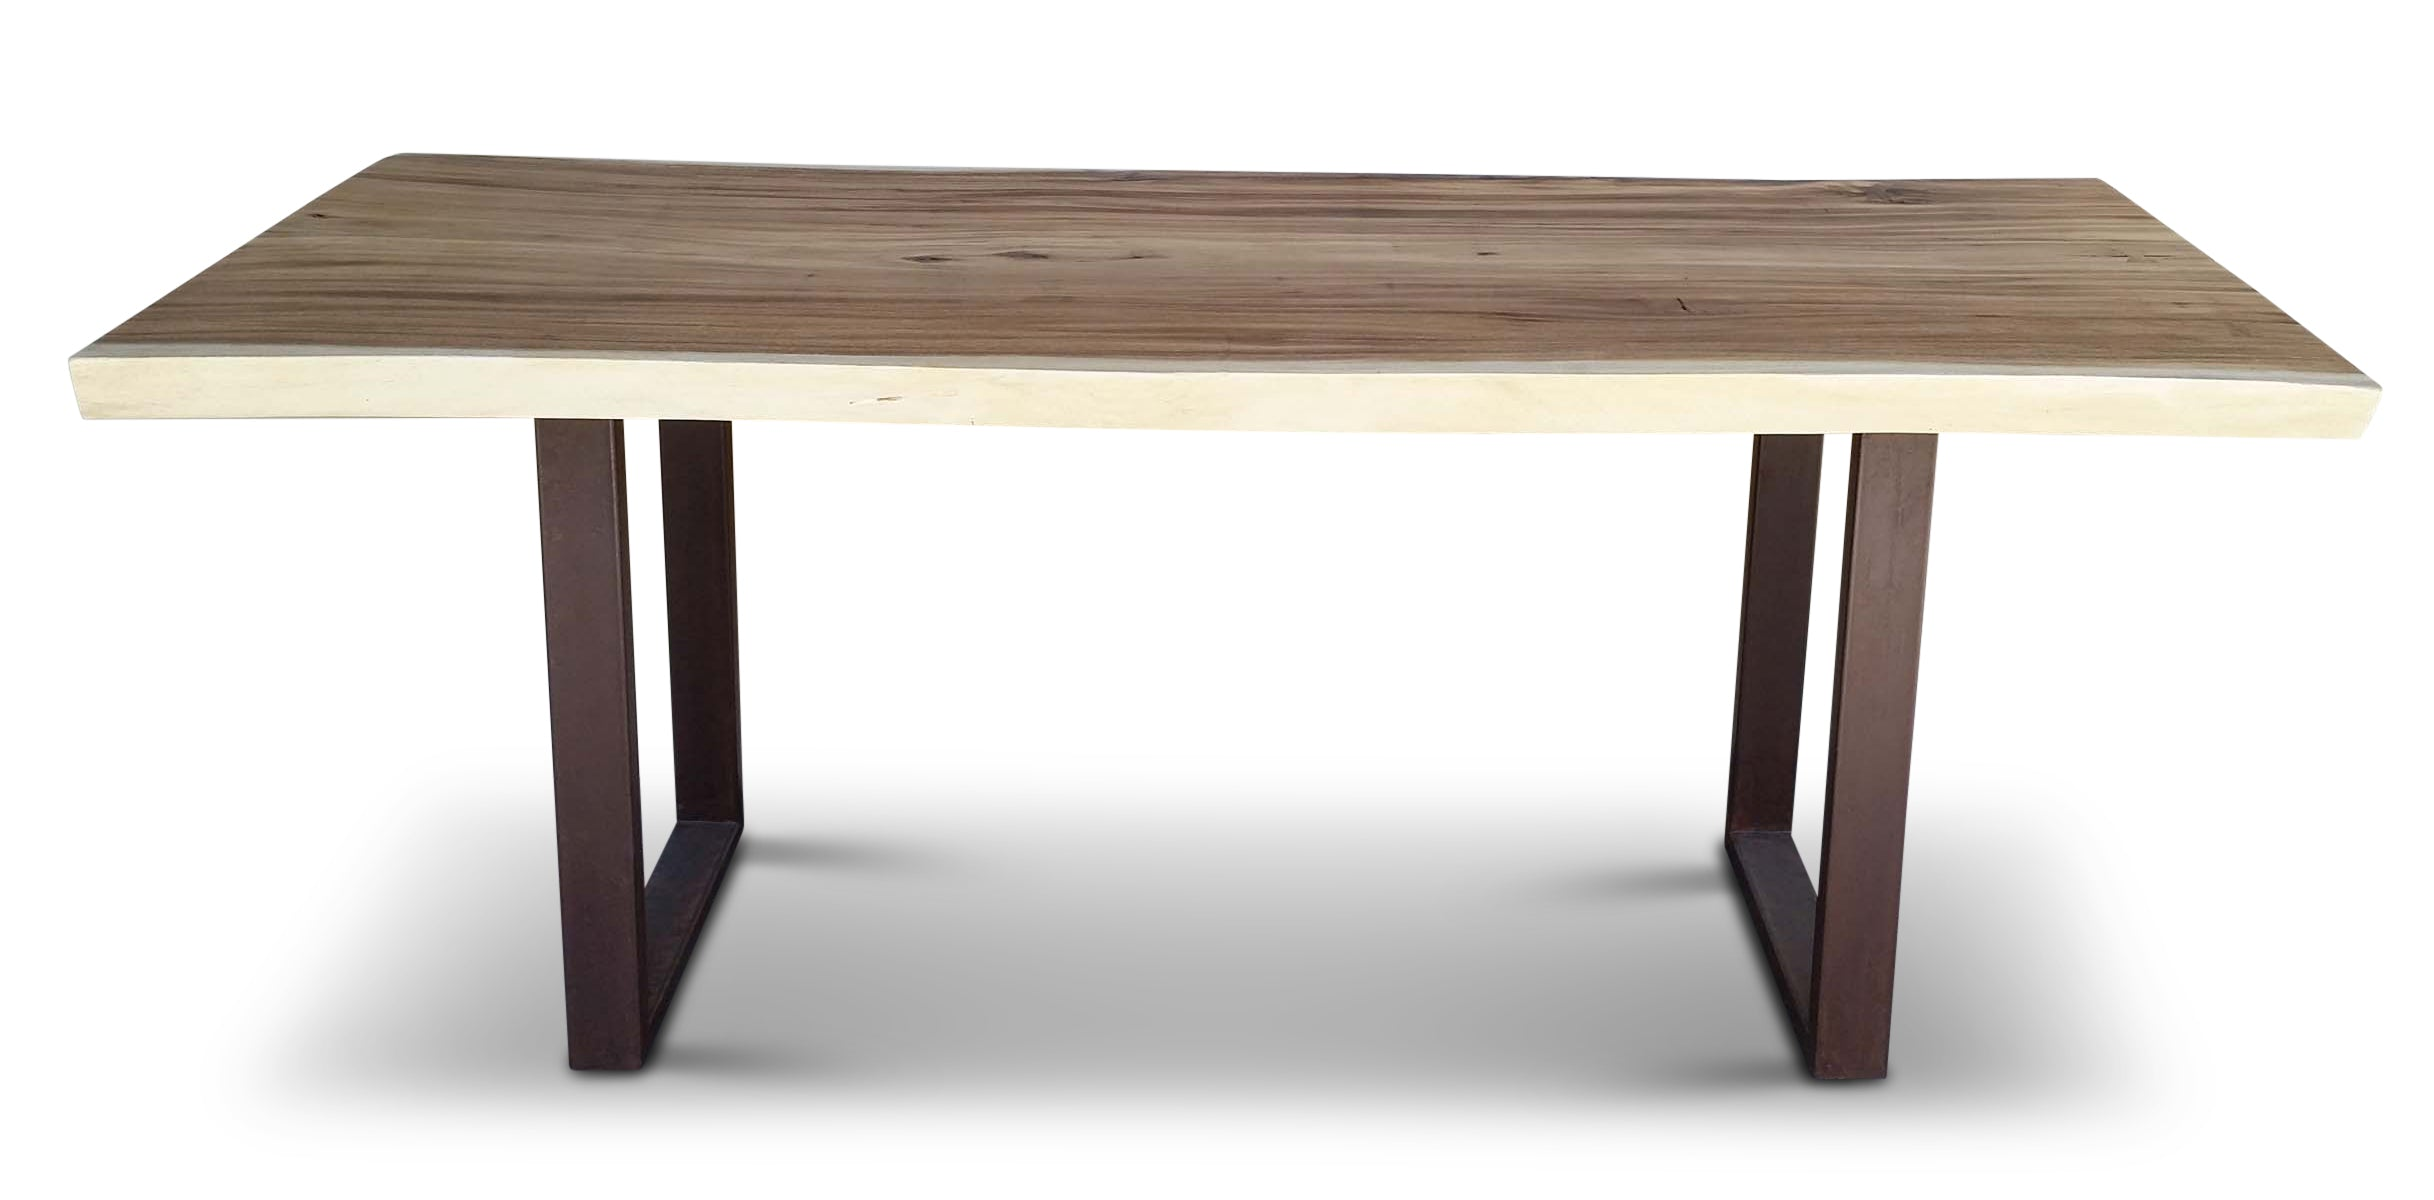 Chamcha Desk - Rust Finish Leg